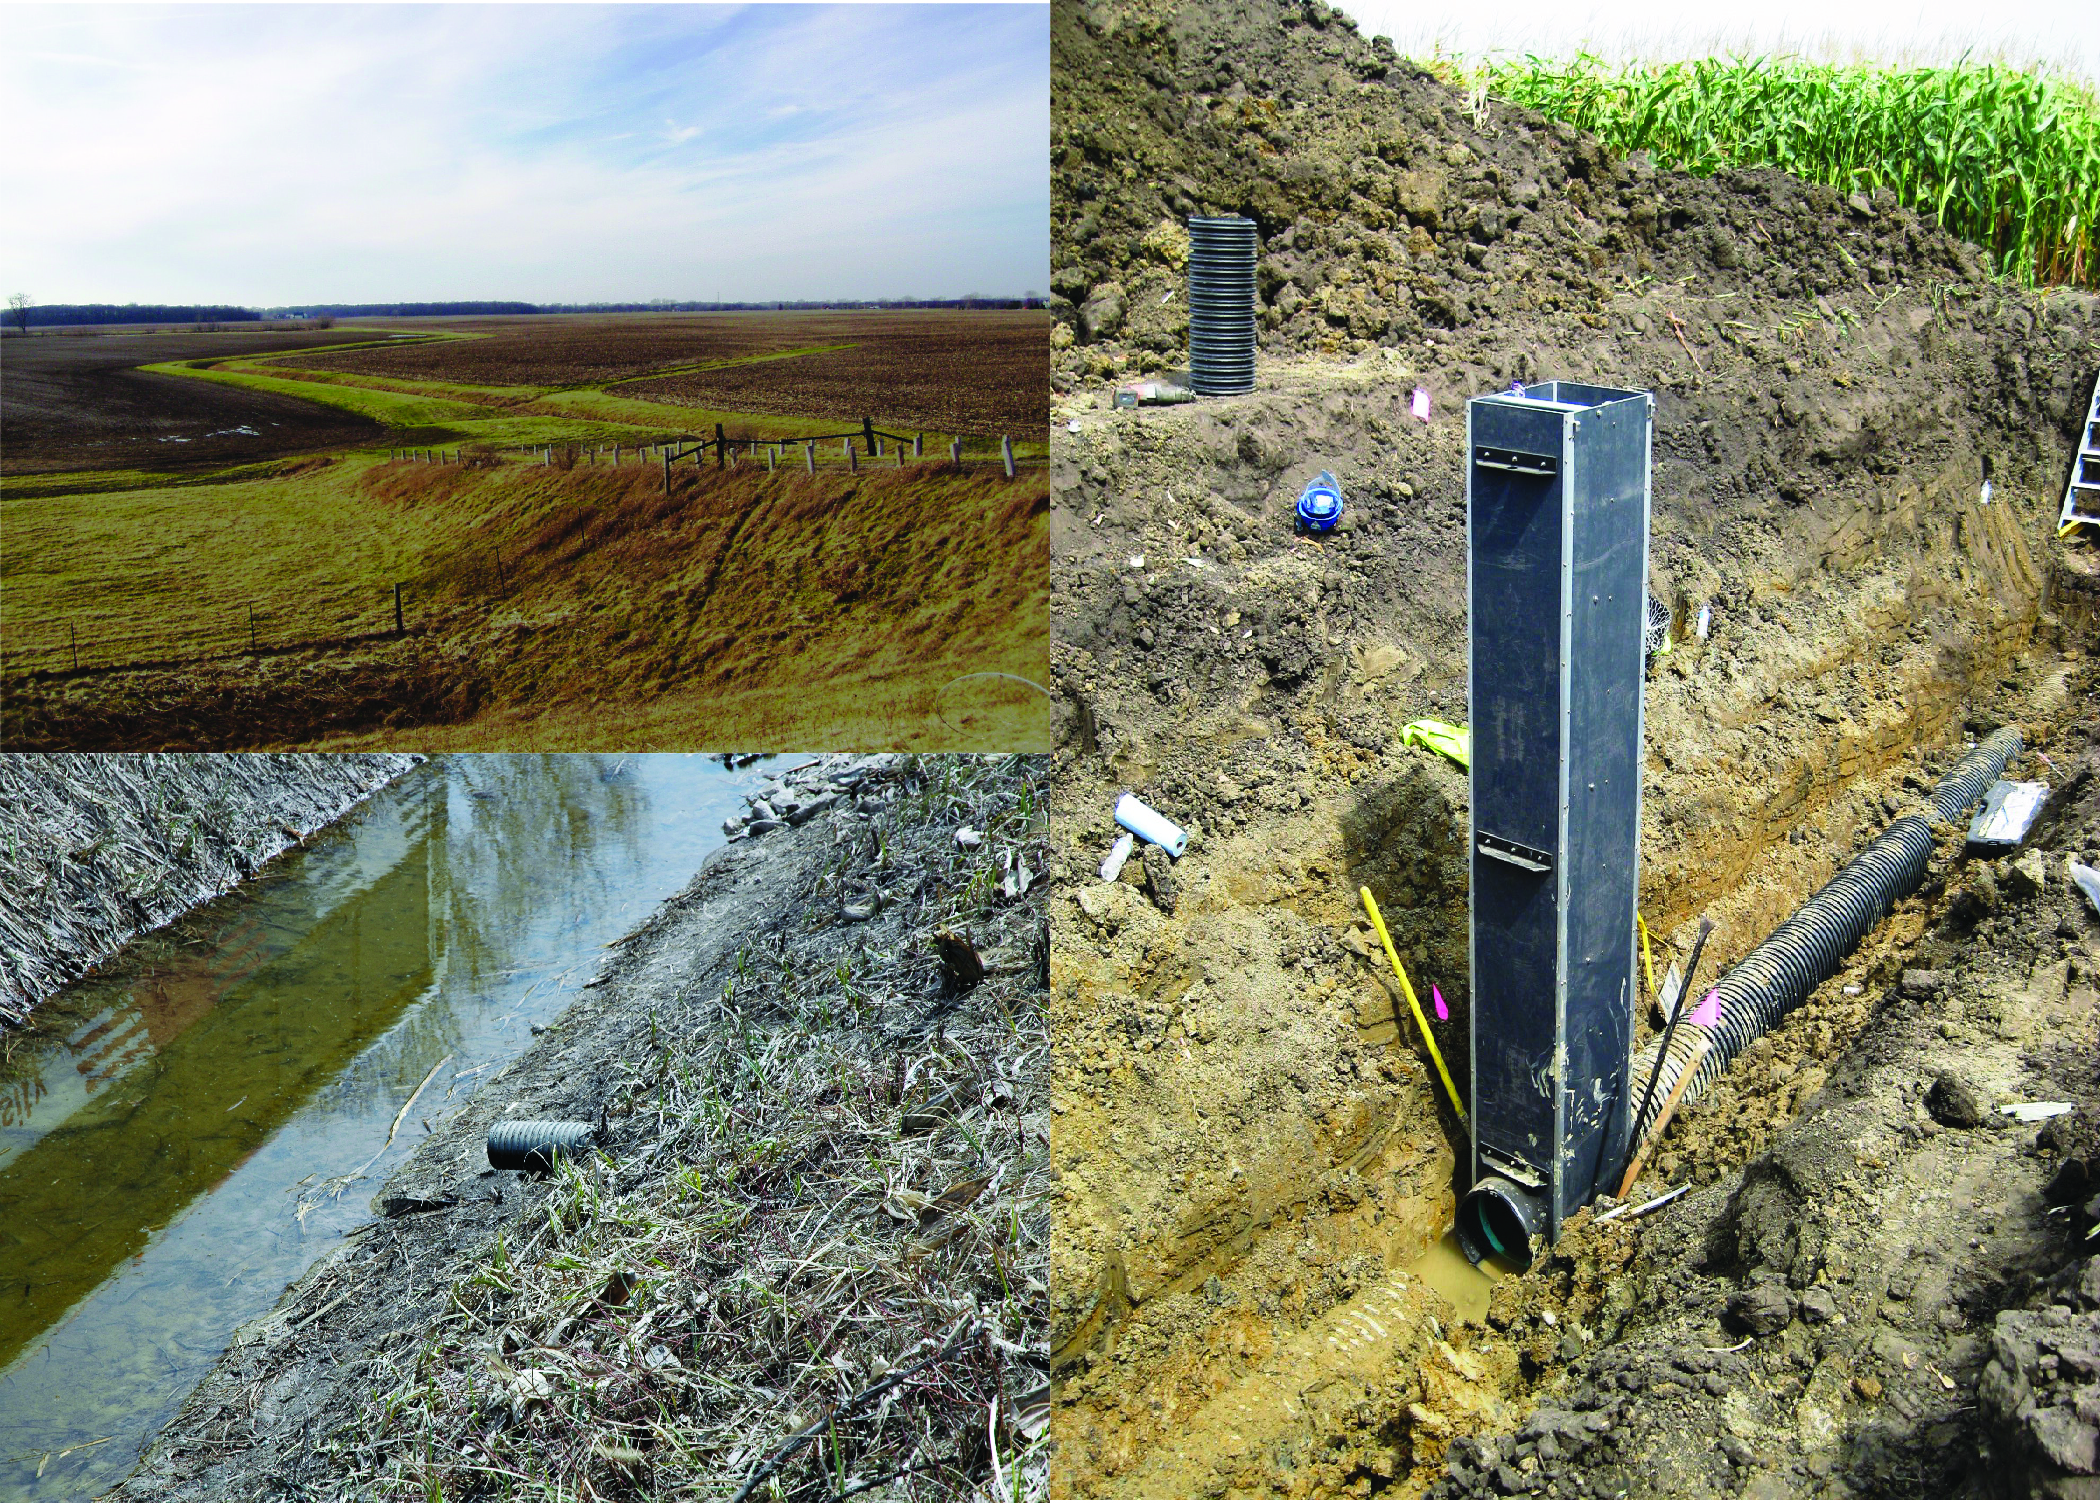 Top left - drainage landscape. Lower left Subsurface drain. Right Drainage water control structure